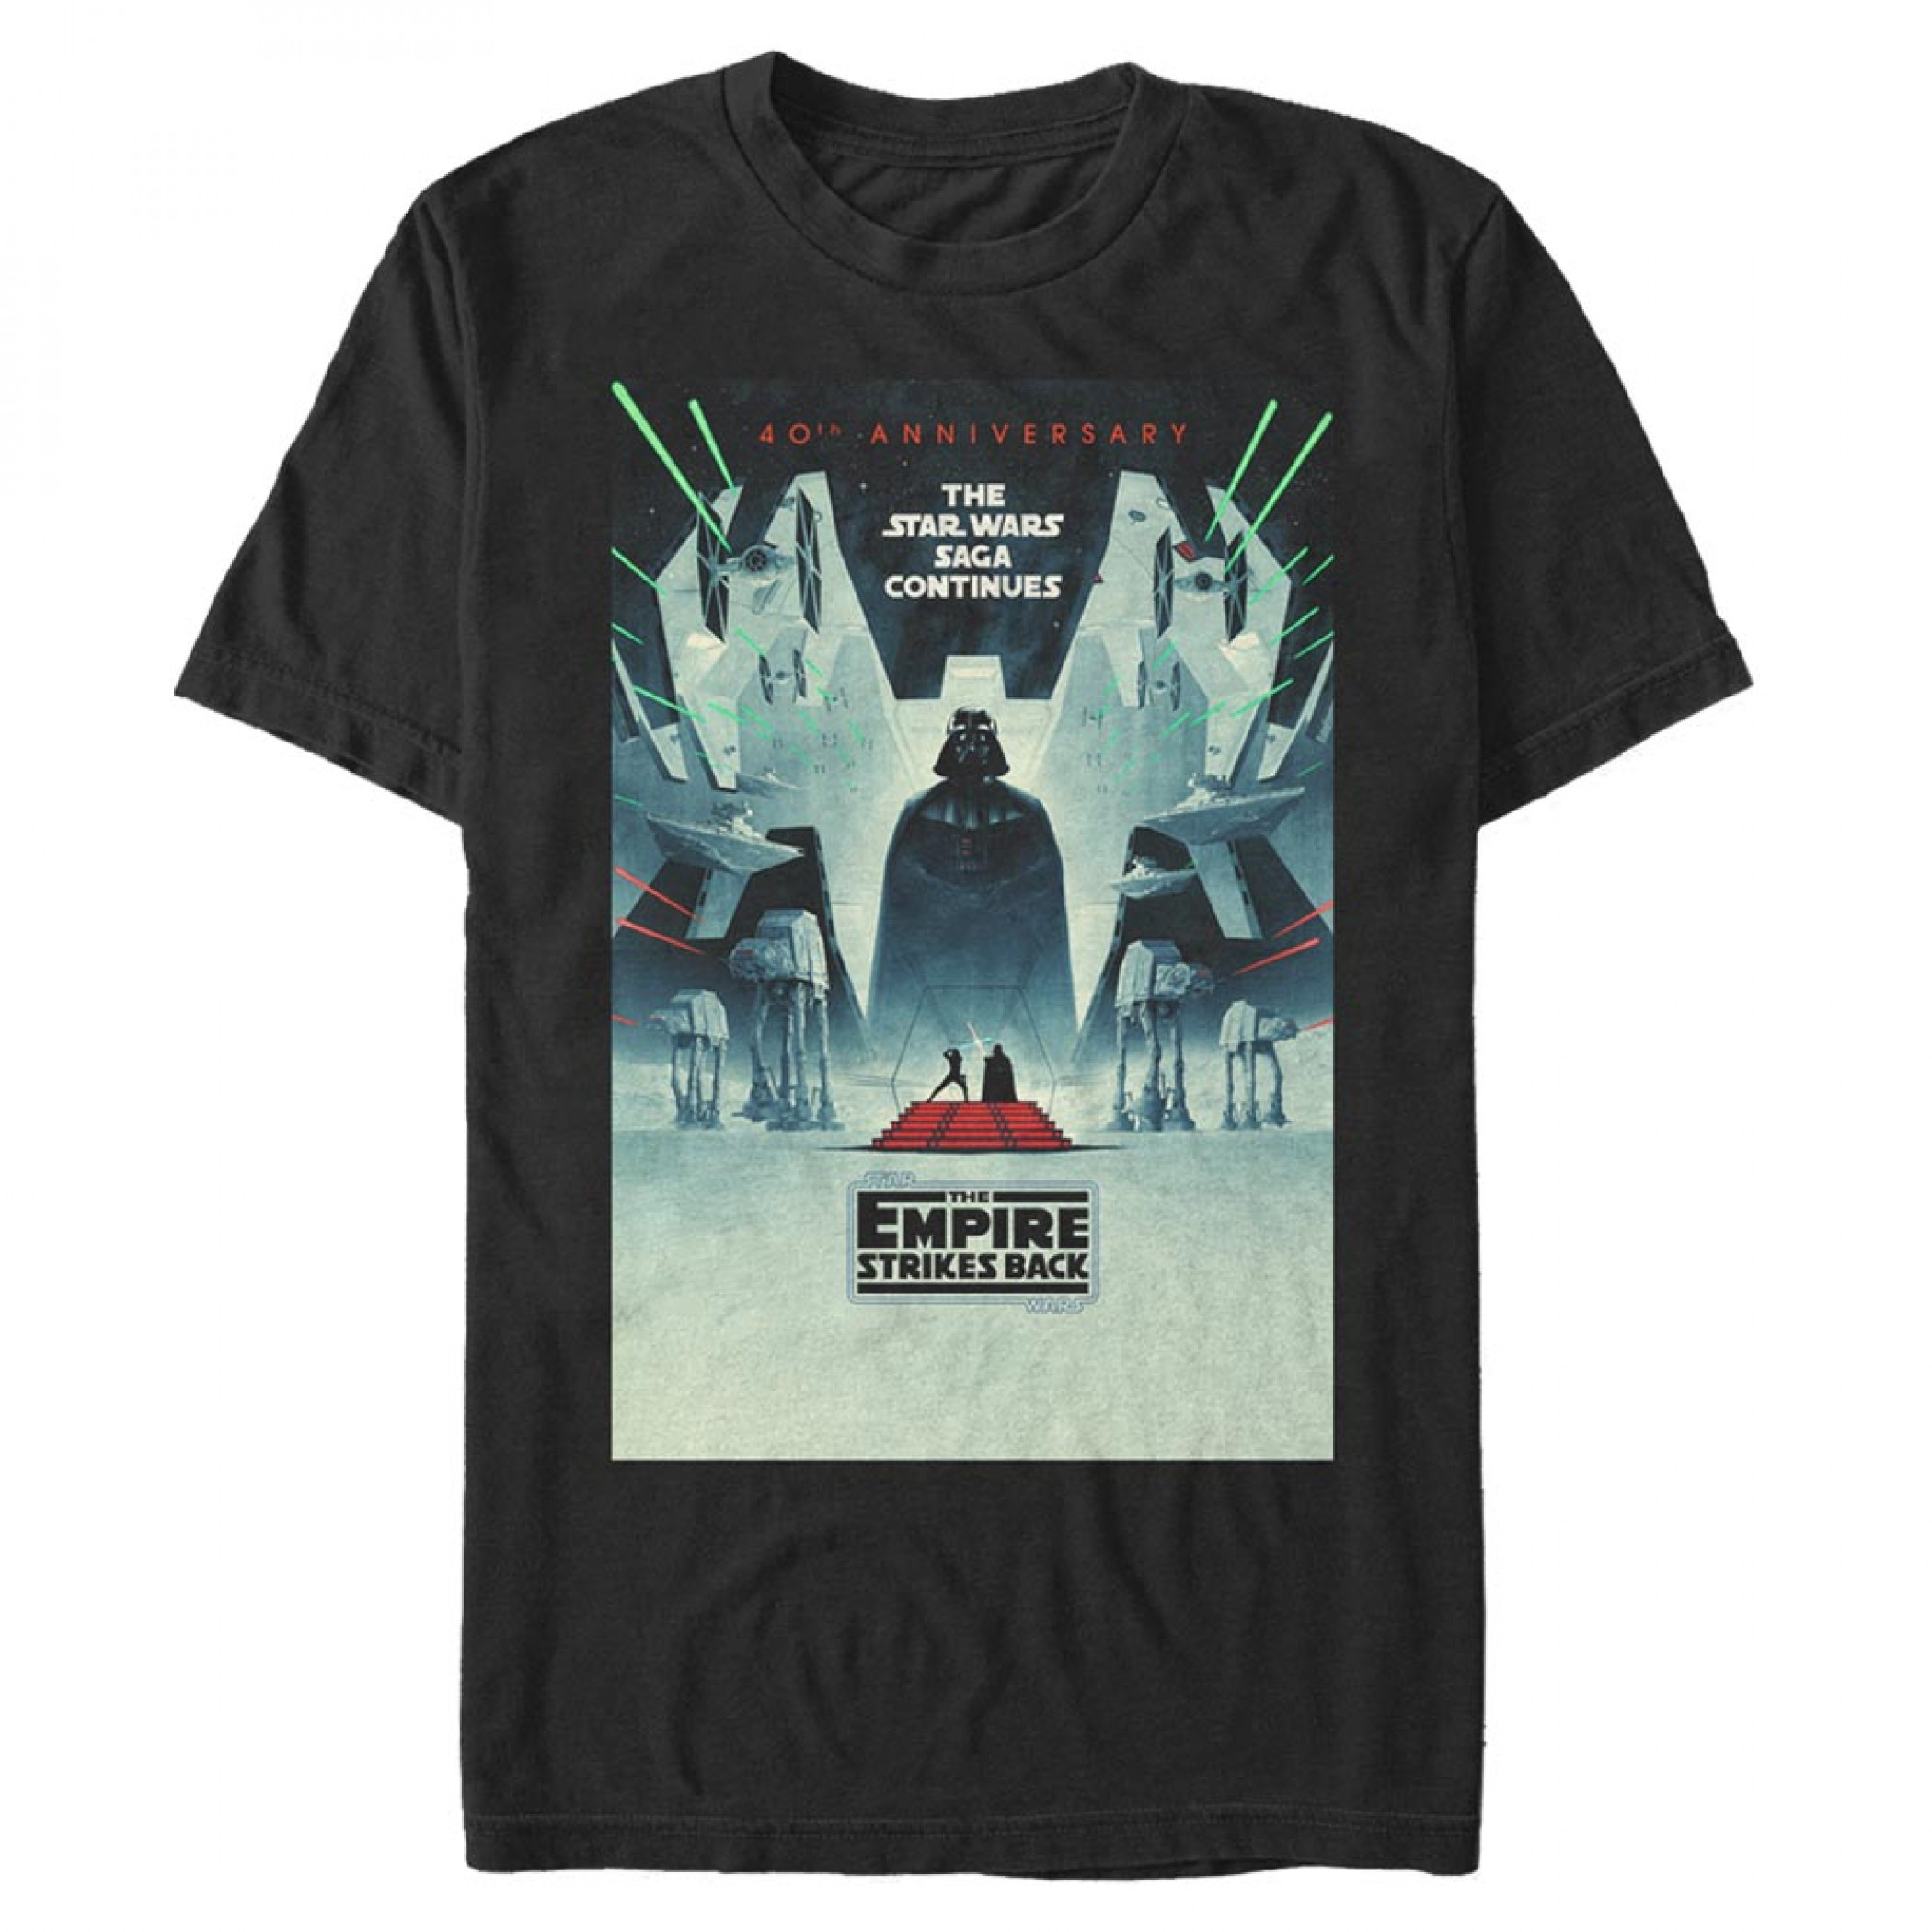 Star Wars The Empire Strikes Back 40th Anniversary T-Shirt